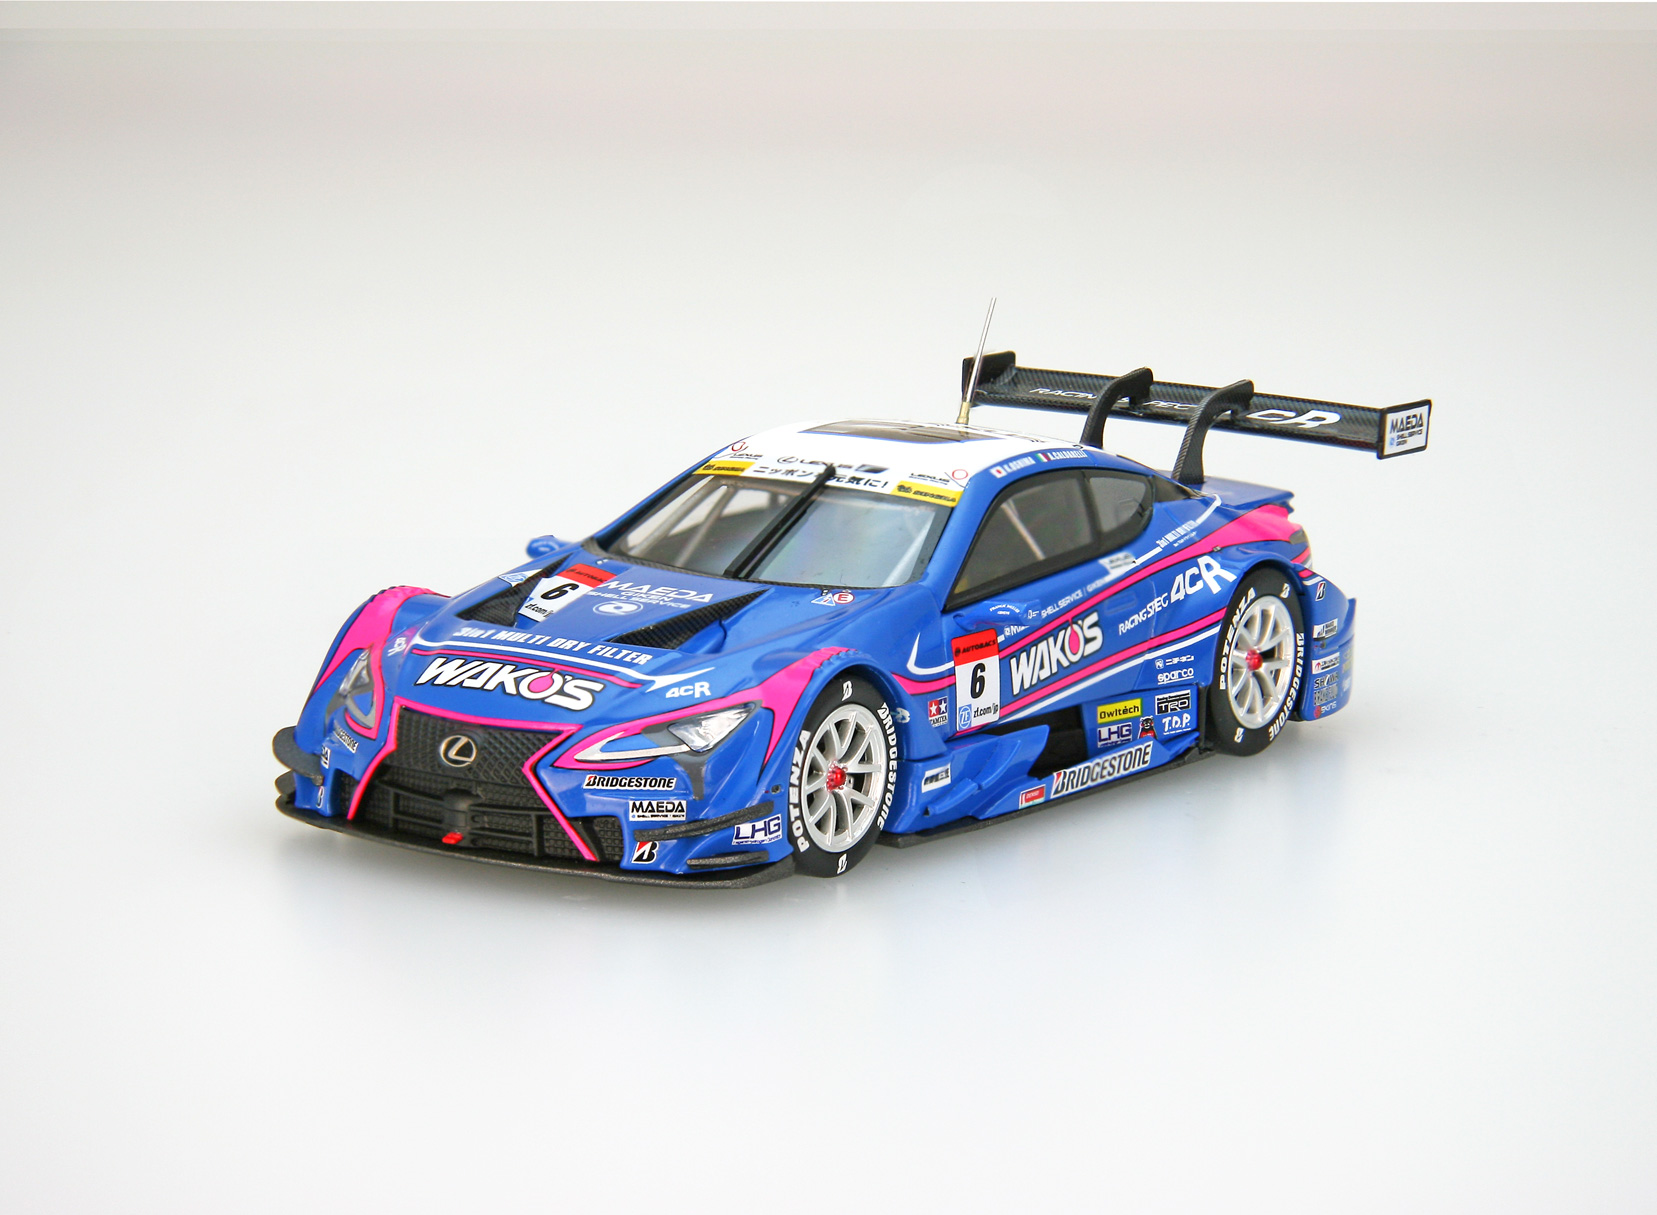 ☆予約品☆【45522】WAKO'S 4CR LC500 SUPER GT GT500 2017 No.6